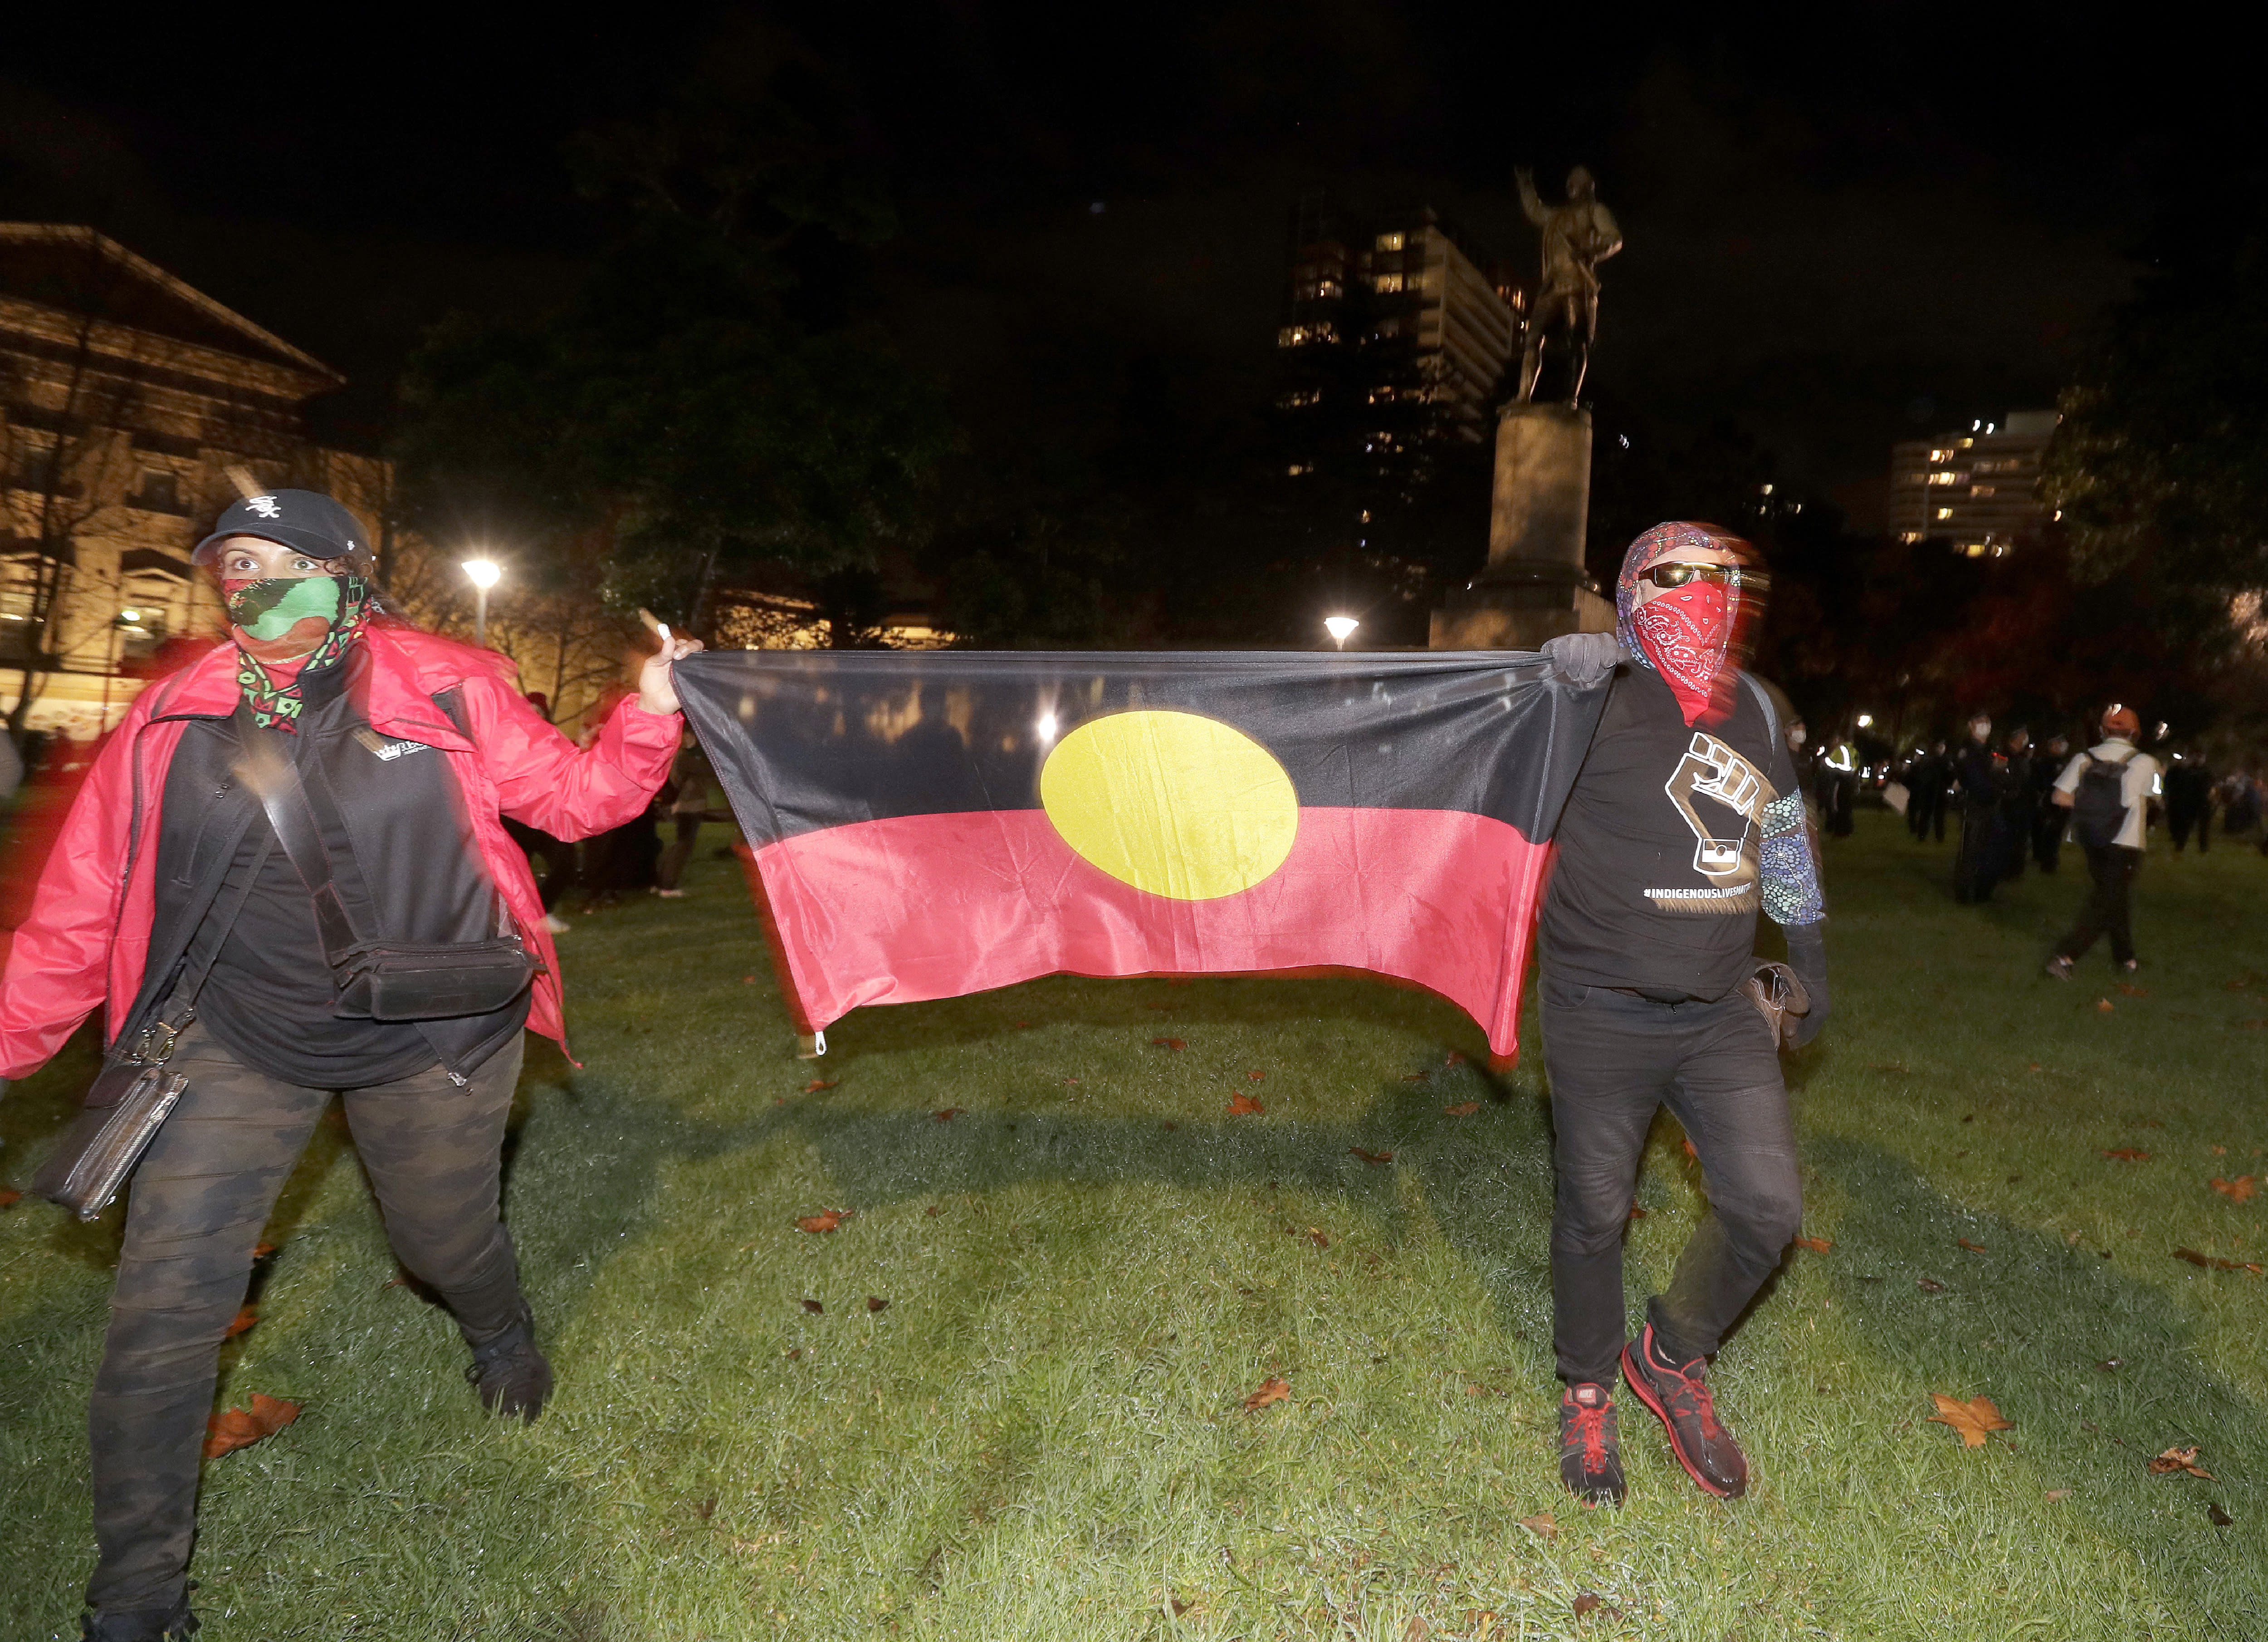 Protestoers carry an Aboriginal flag as the walk past a statue of British explorer James Cook in Sydney, Friday, June 12, 2020, to support U.S. protests over the death of George Floyd. Hundreds of police disrupted plans for a Black Lives Matter rally but protest organizers have vowed that other rallies will continue around Australia over the weekend despite warnings of the pandemic risk. (AP Photo/Rick Rycroft)